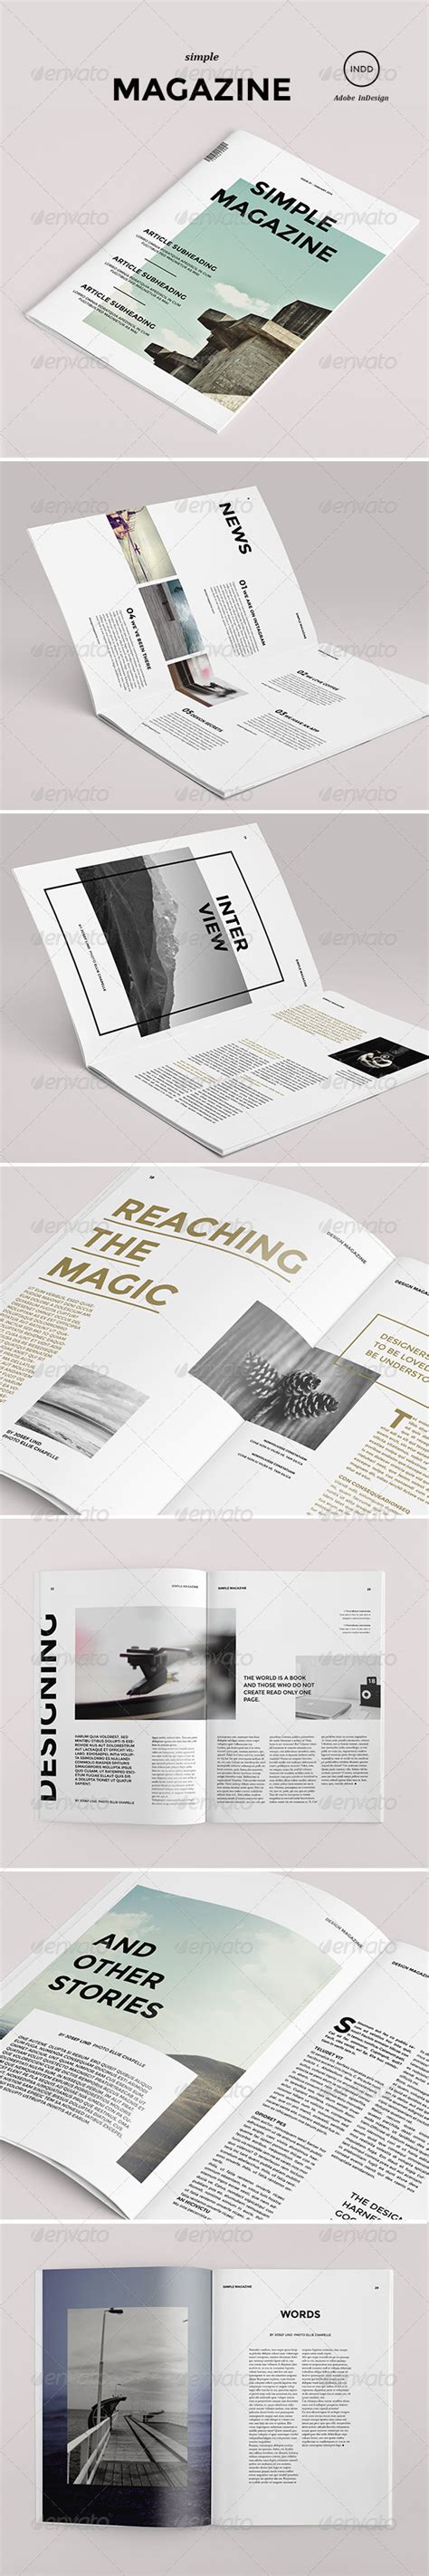 print magazine templates simple magazine graphicriver